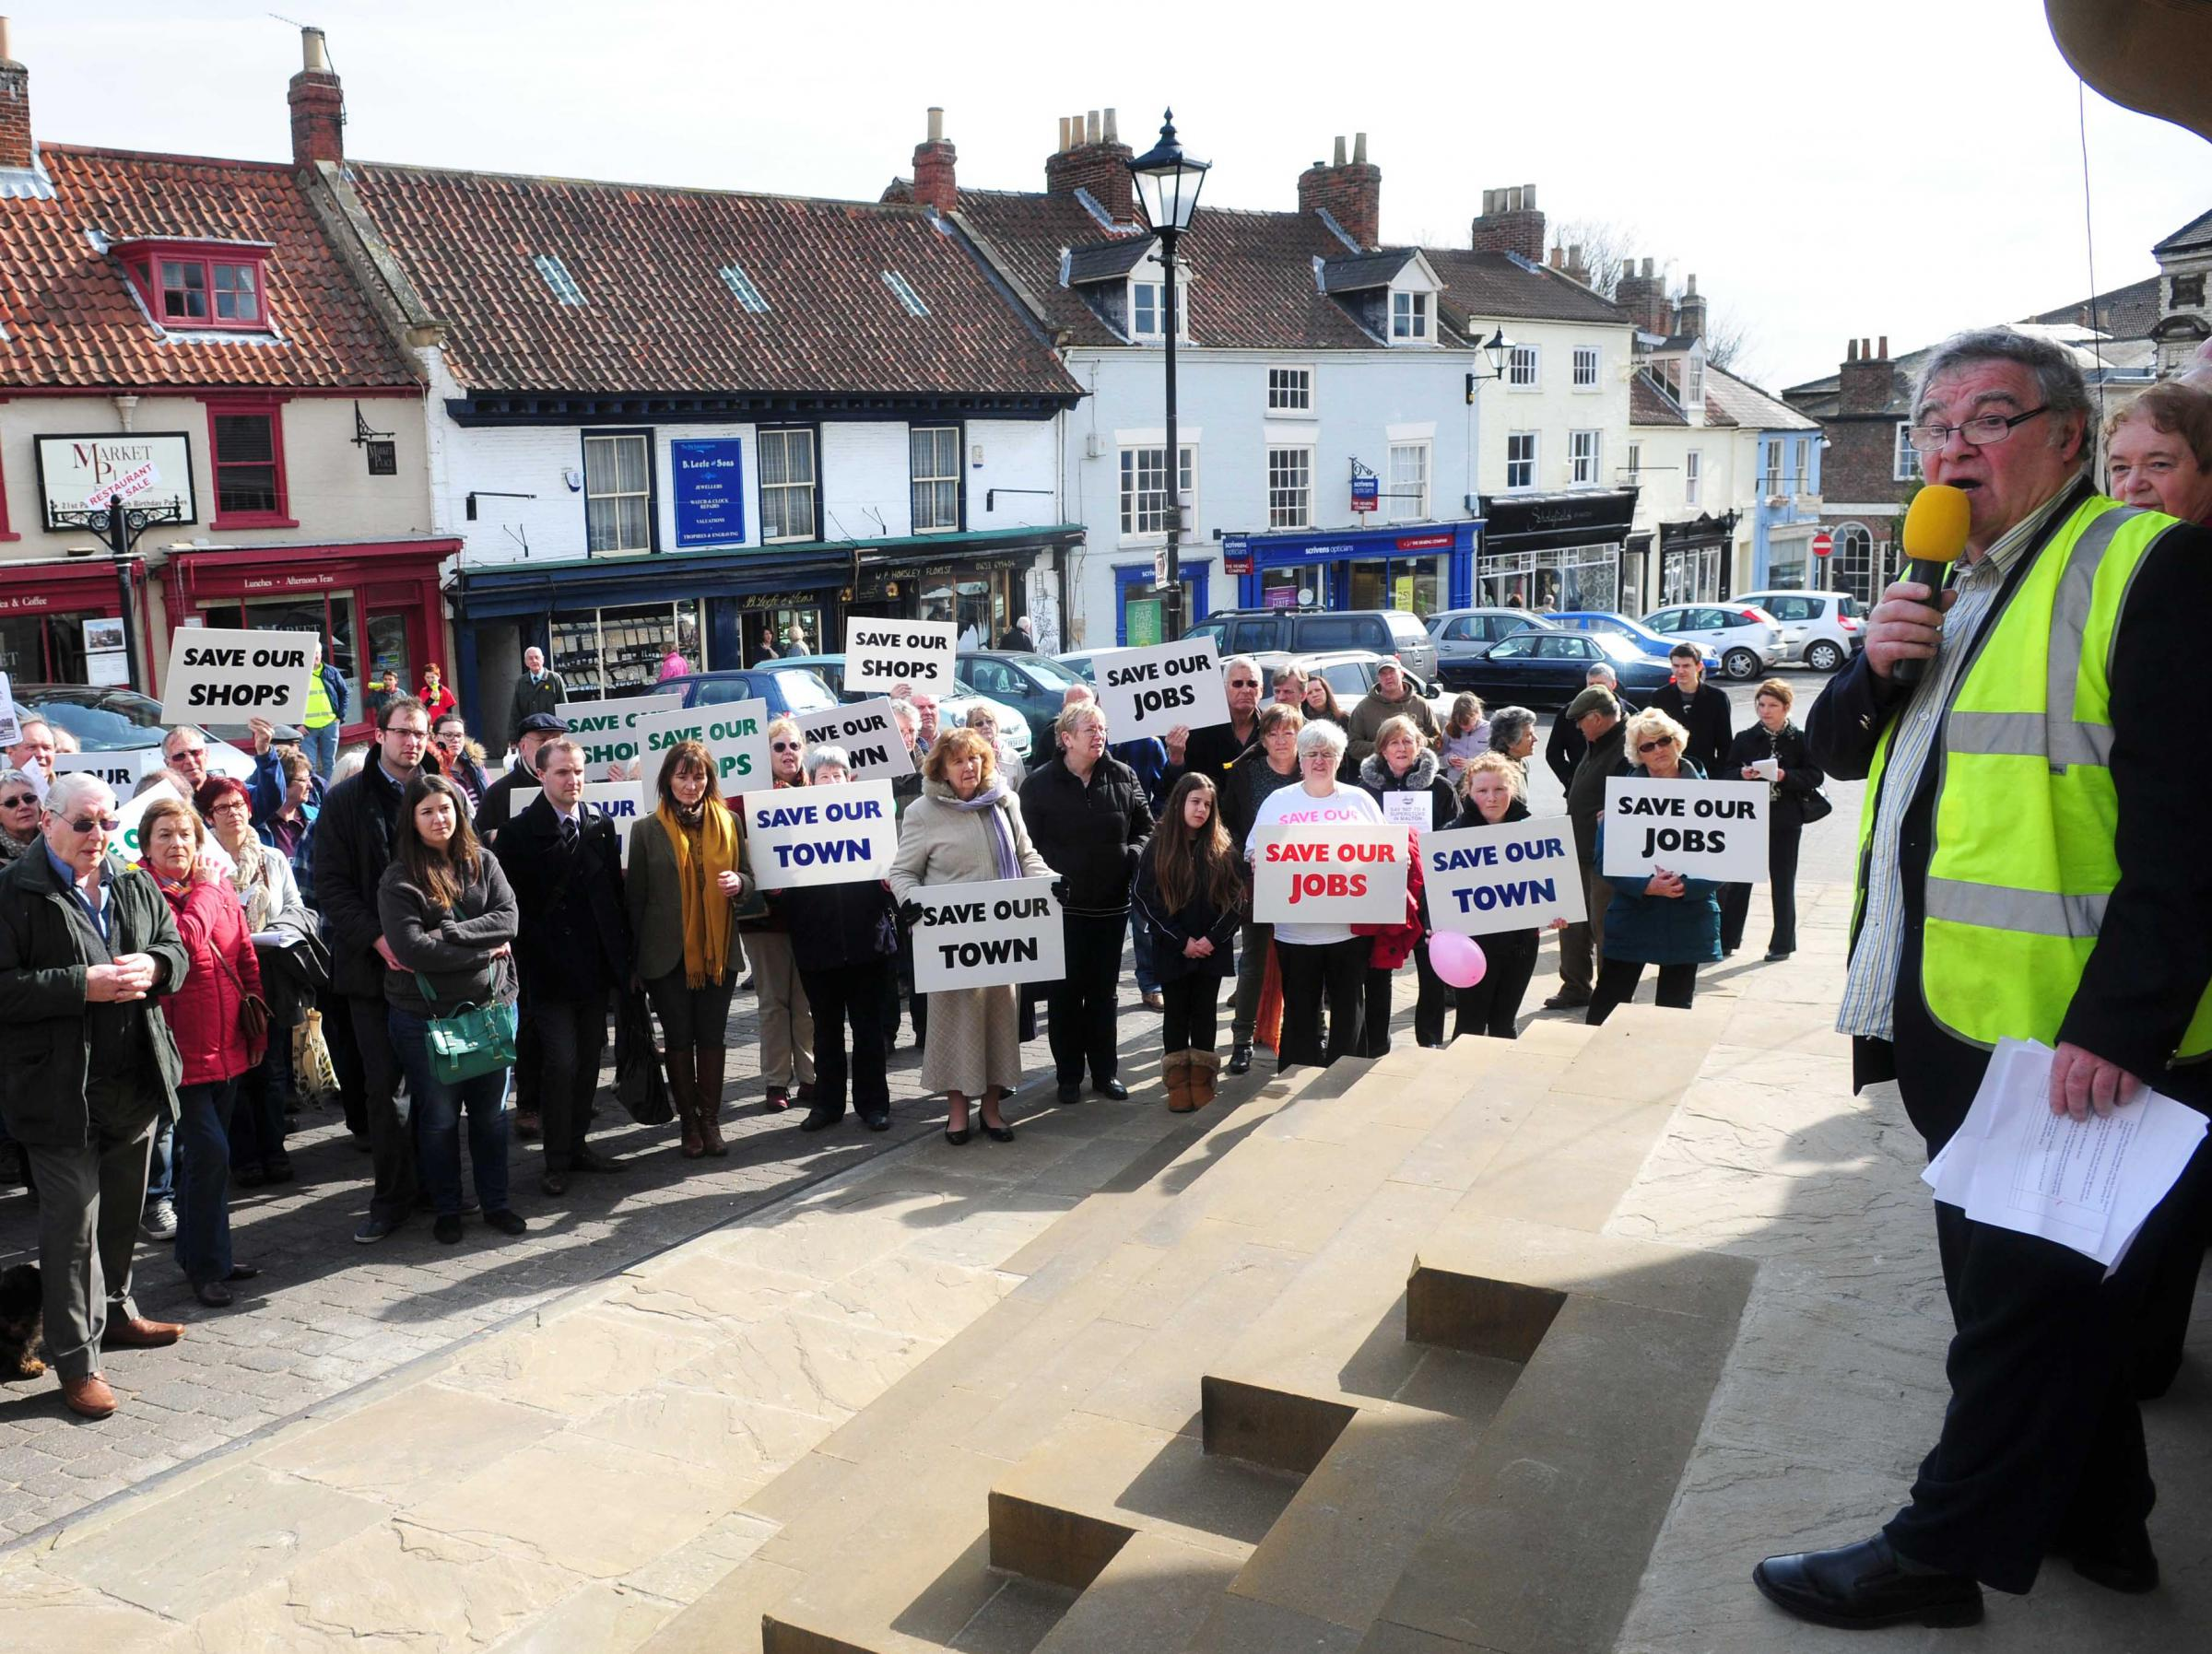 Public protest over supermarket plans